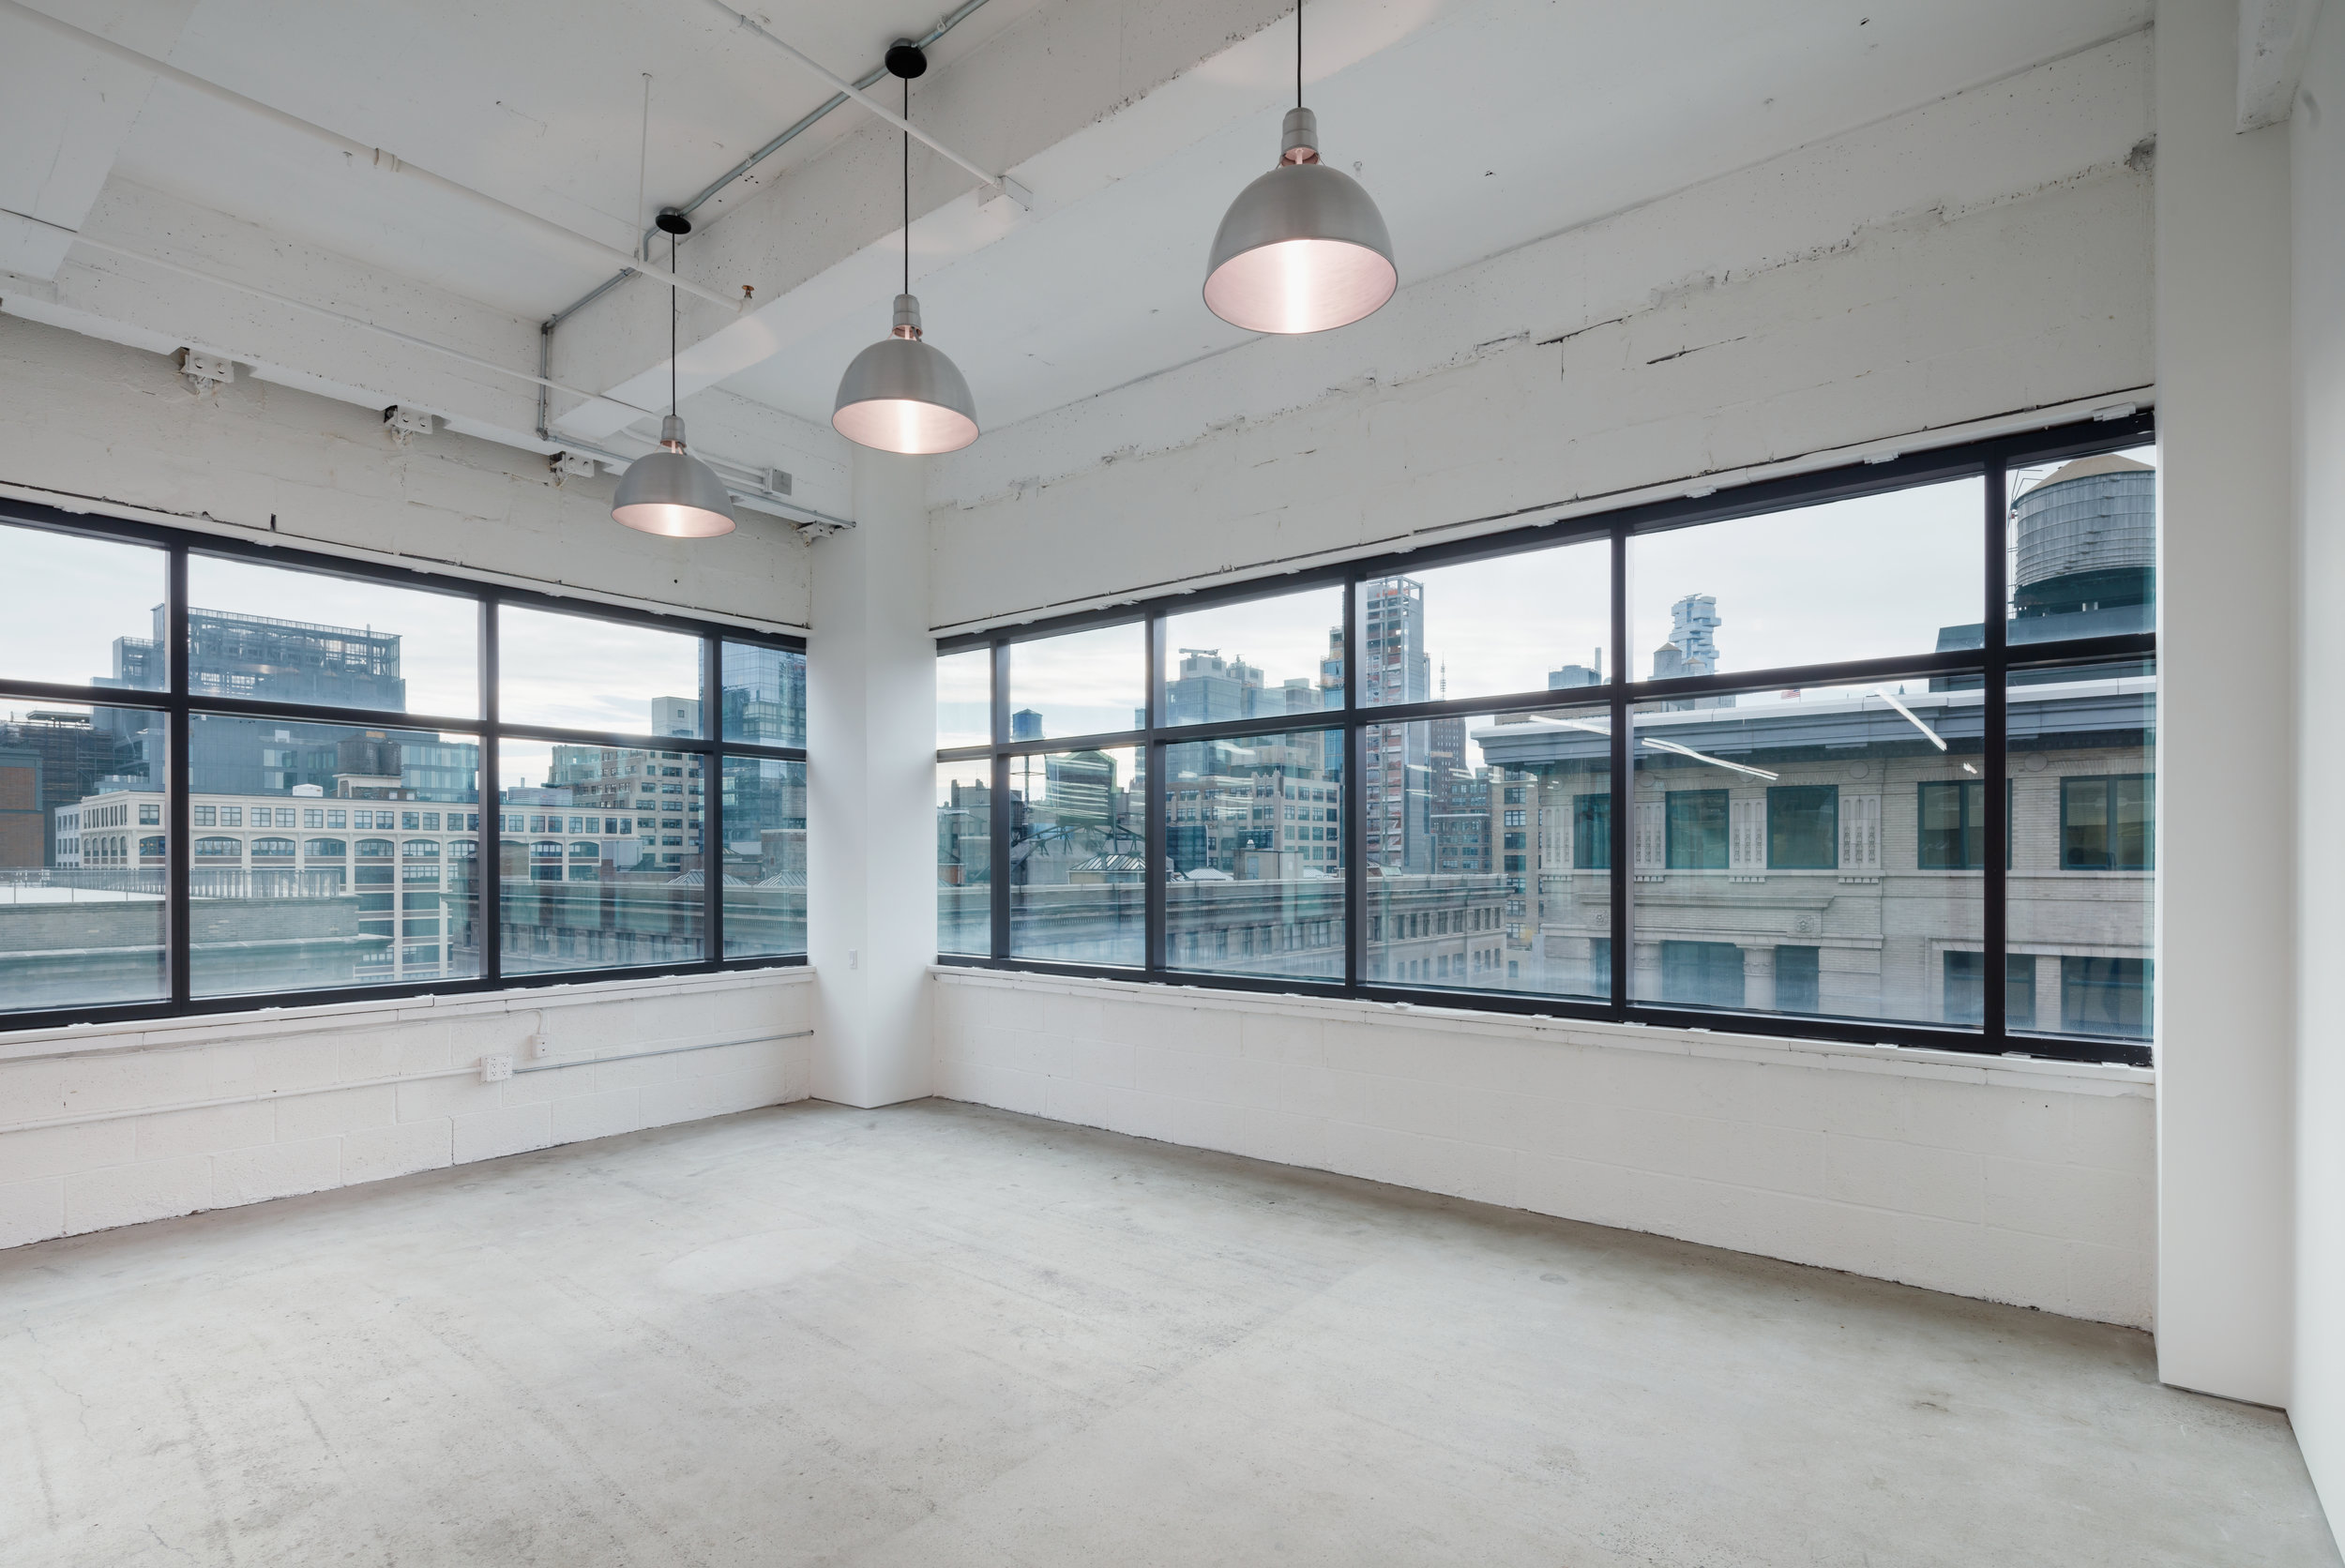 Windows with view in vacant office space